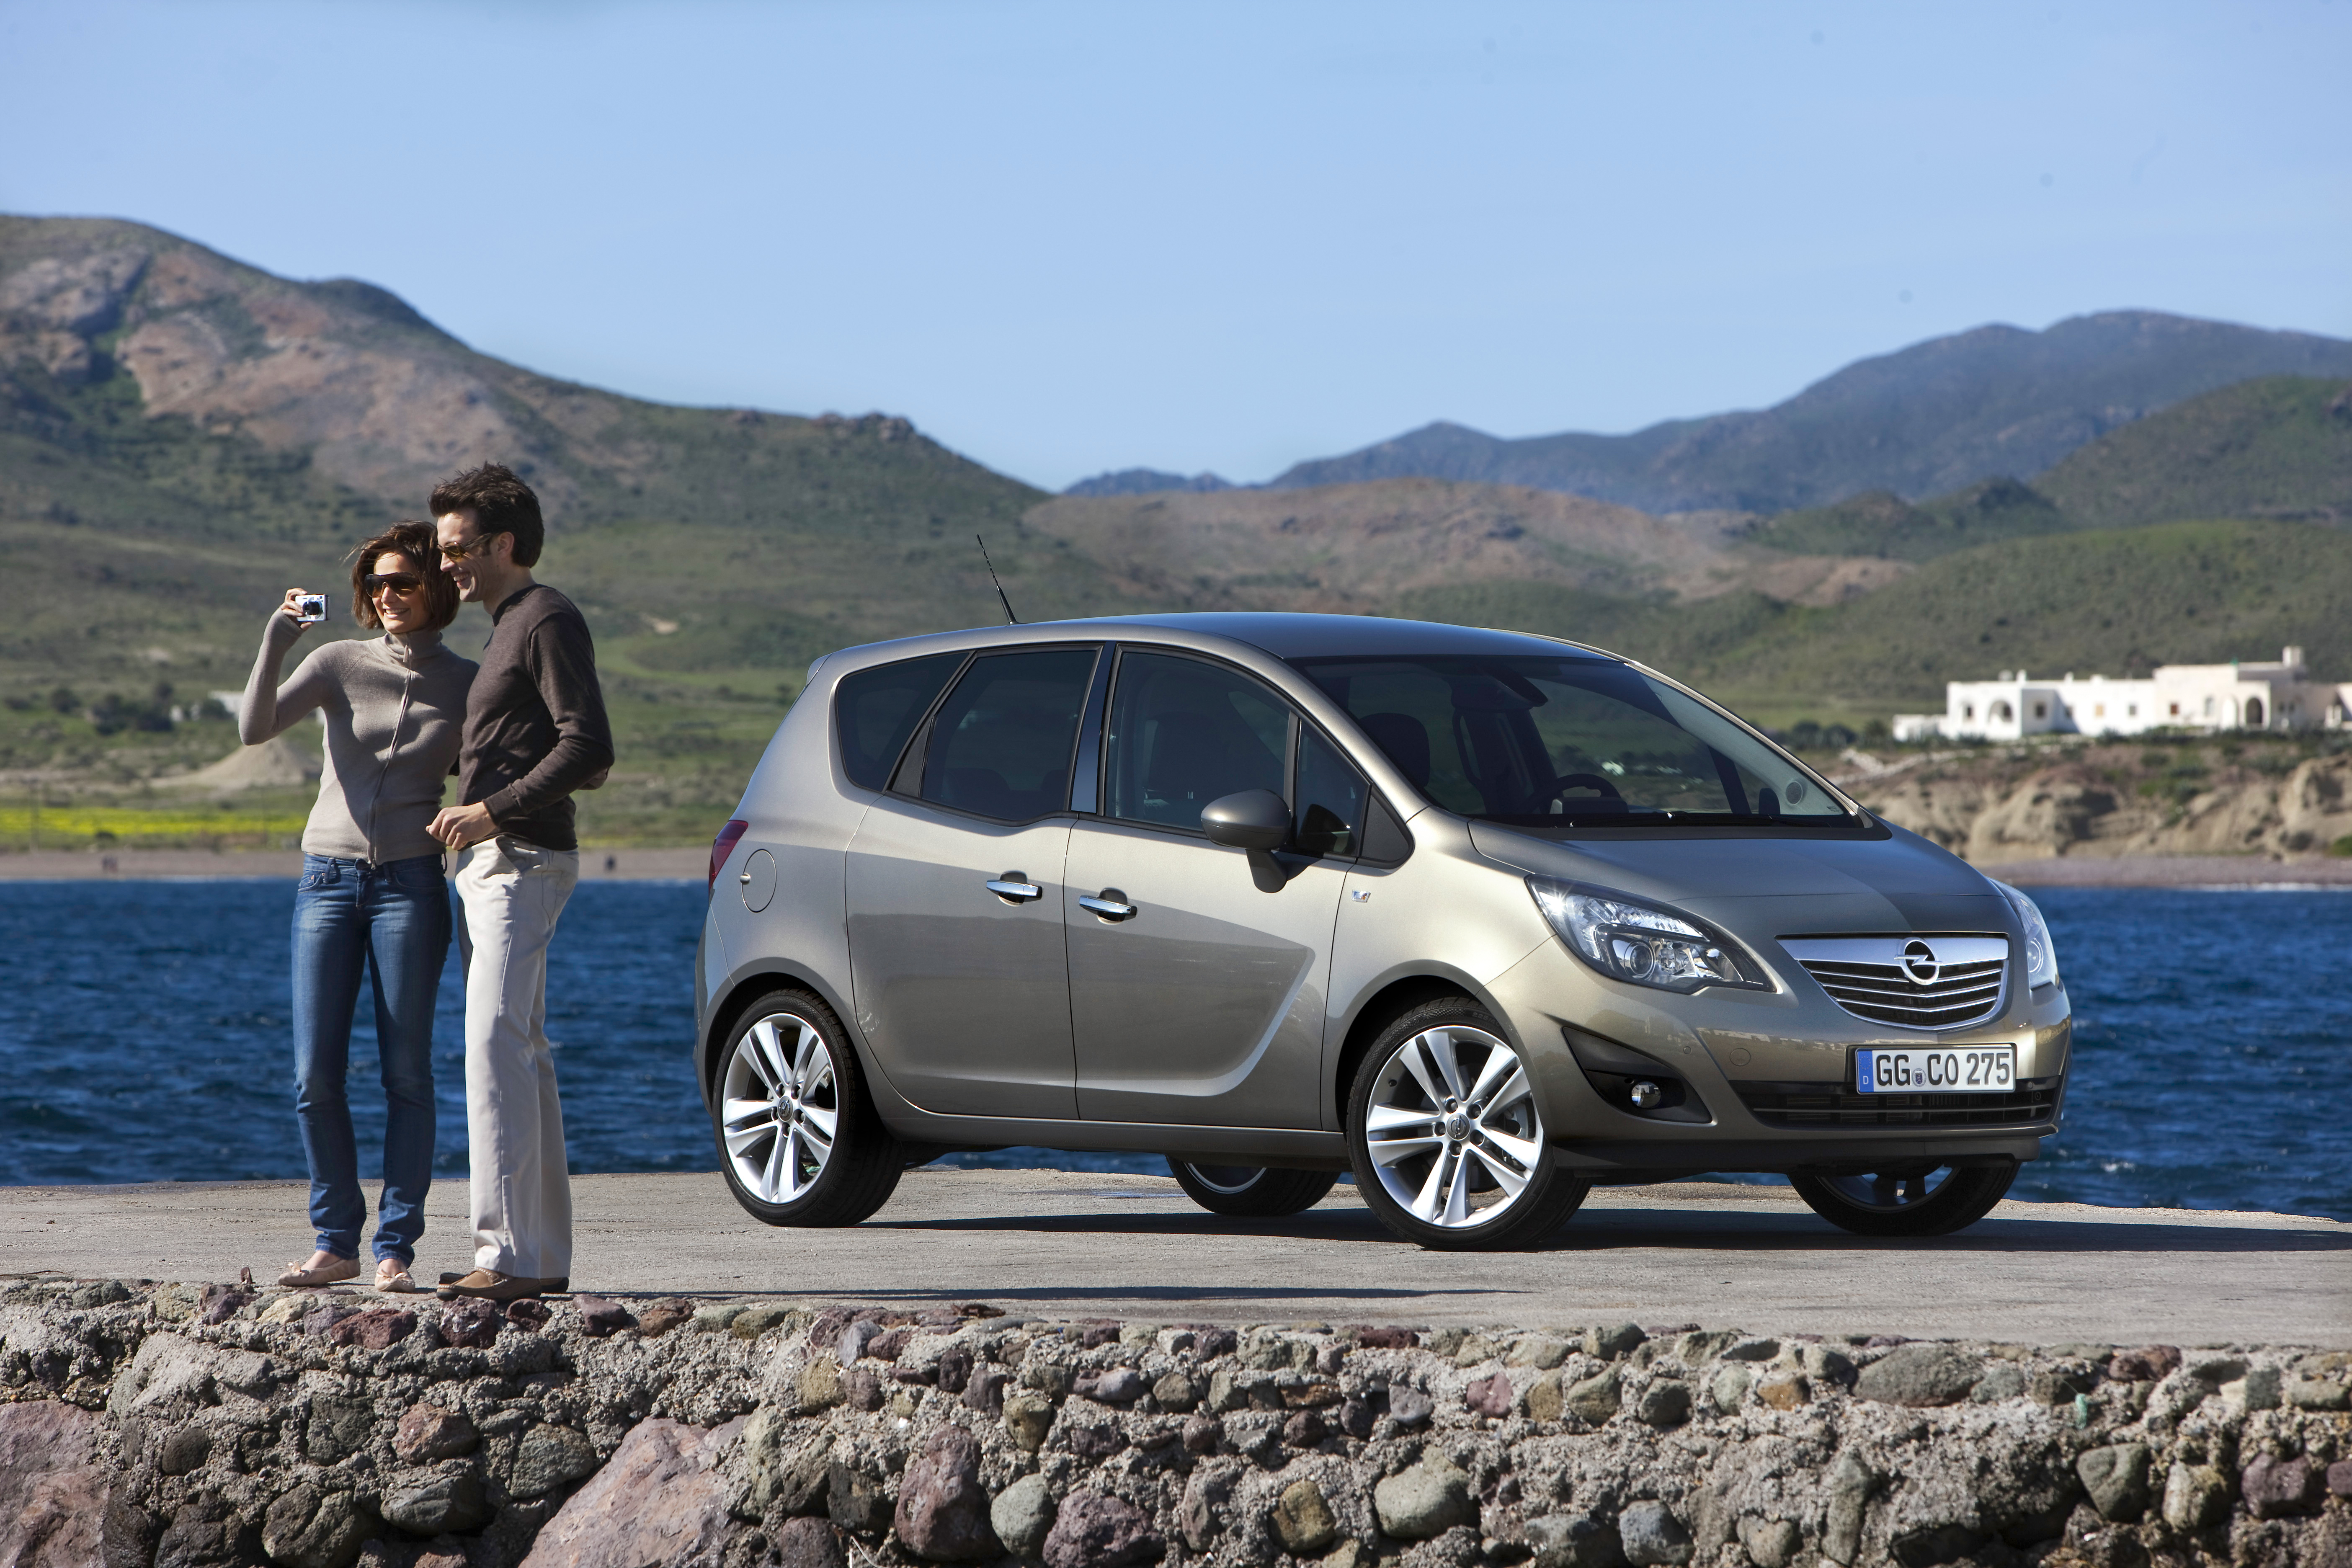 opel meriva 1 7 2012 technical specifications interior and exterior photo. Black Bedroom Furniture Sets. Home Design Ideas